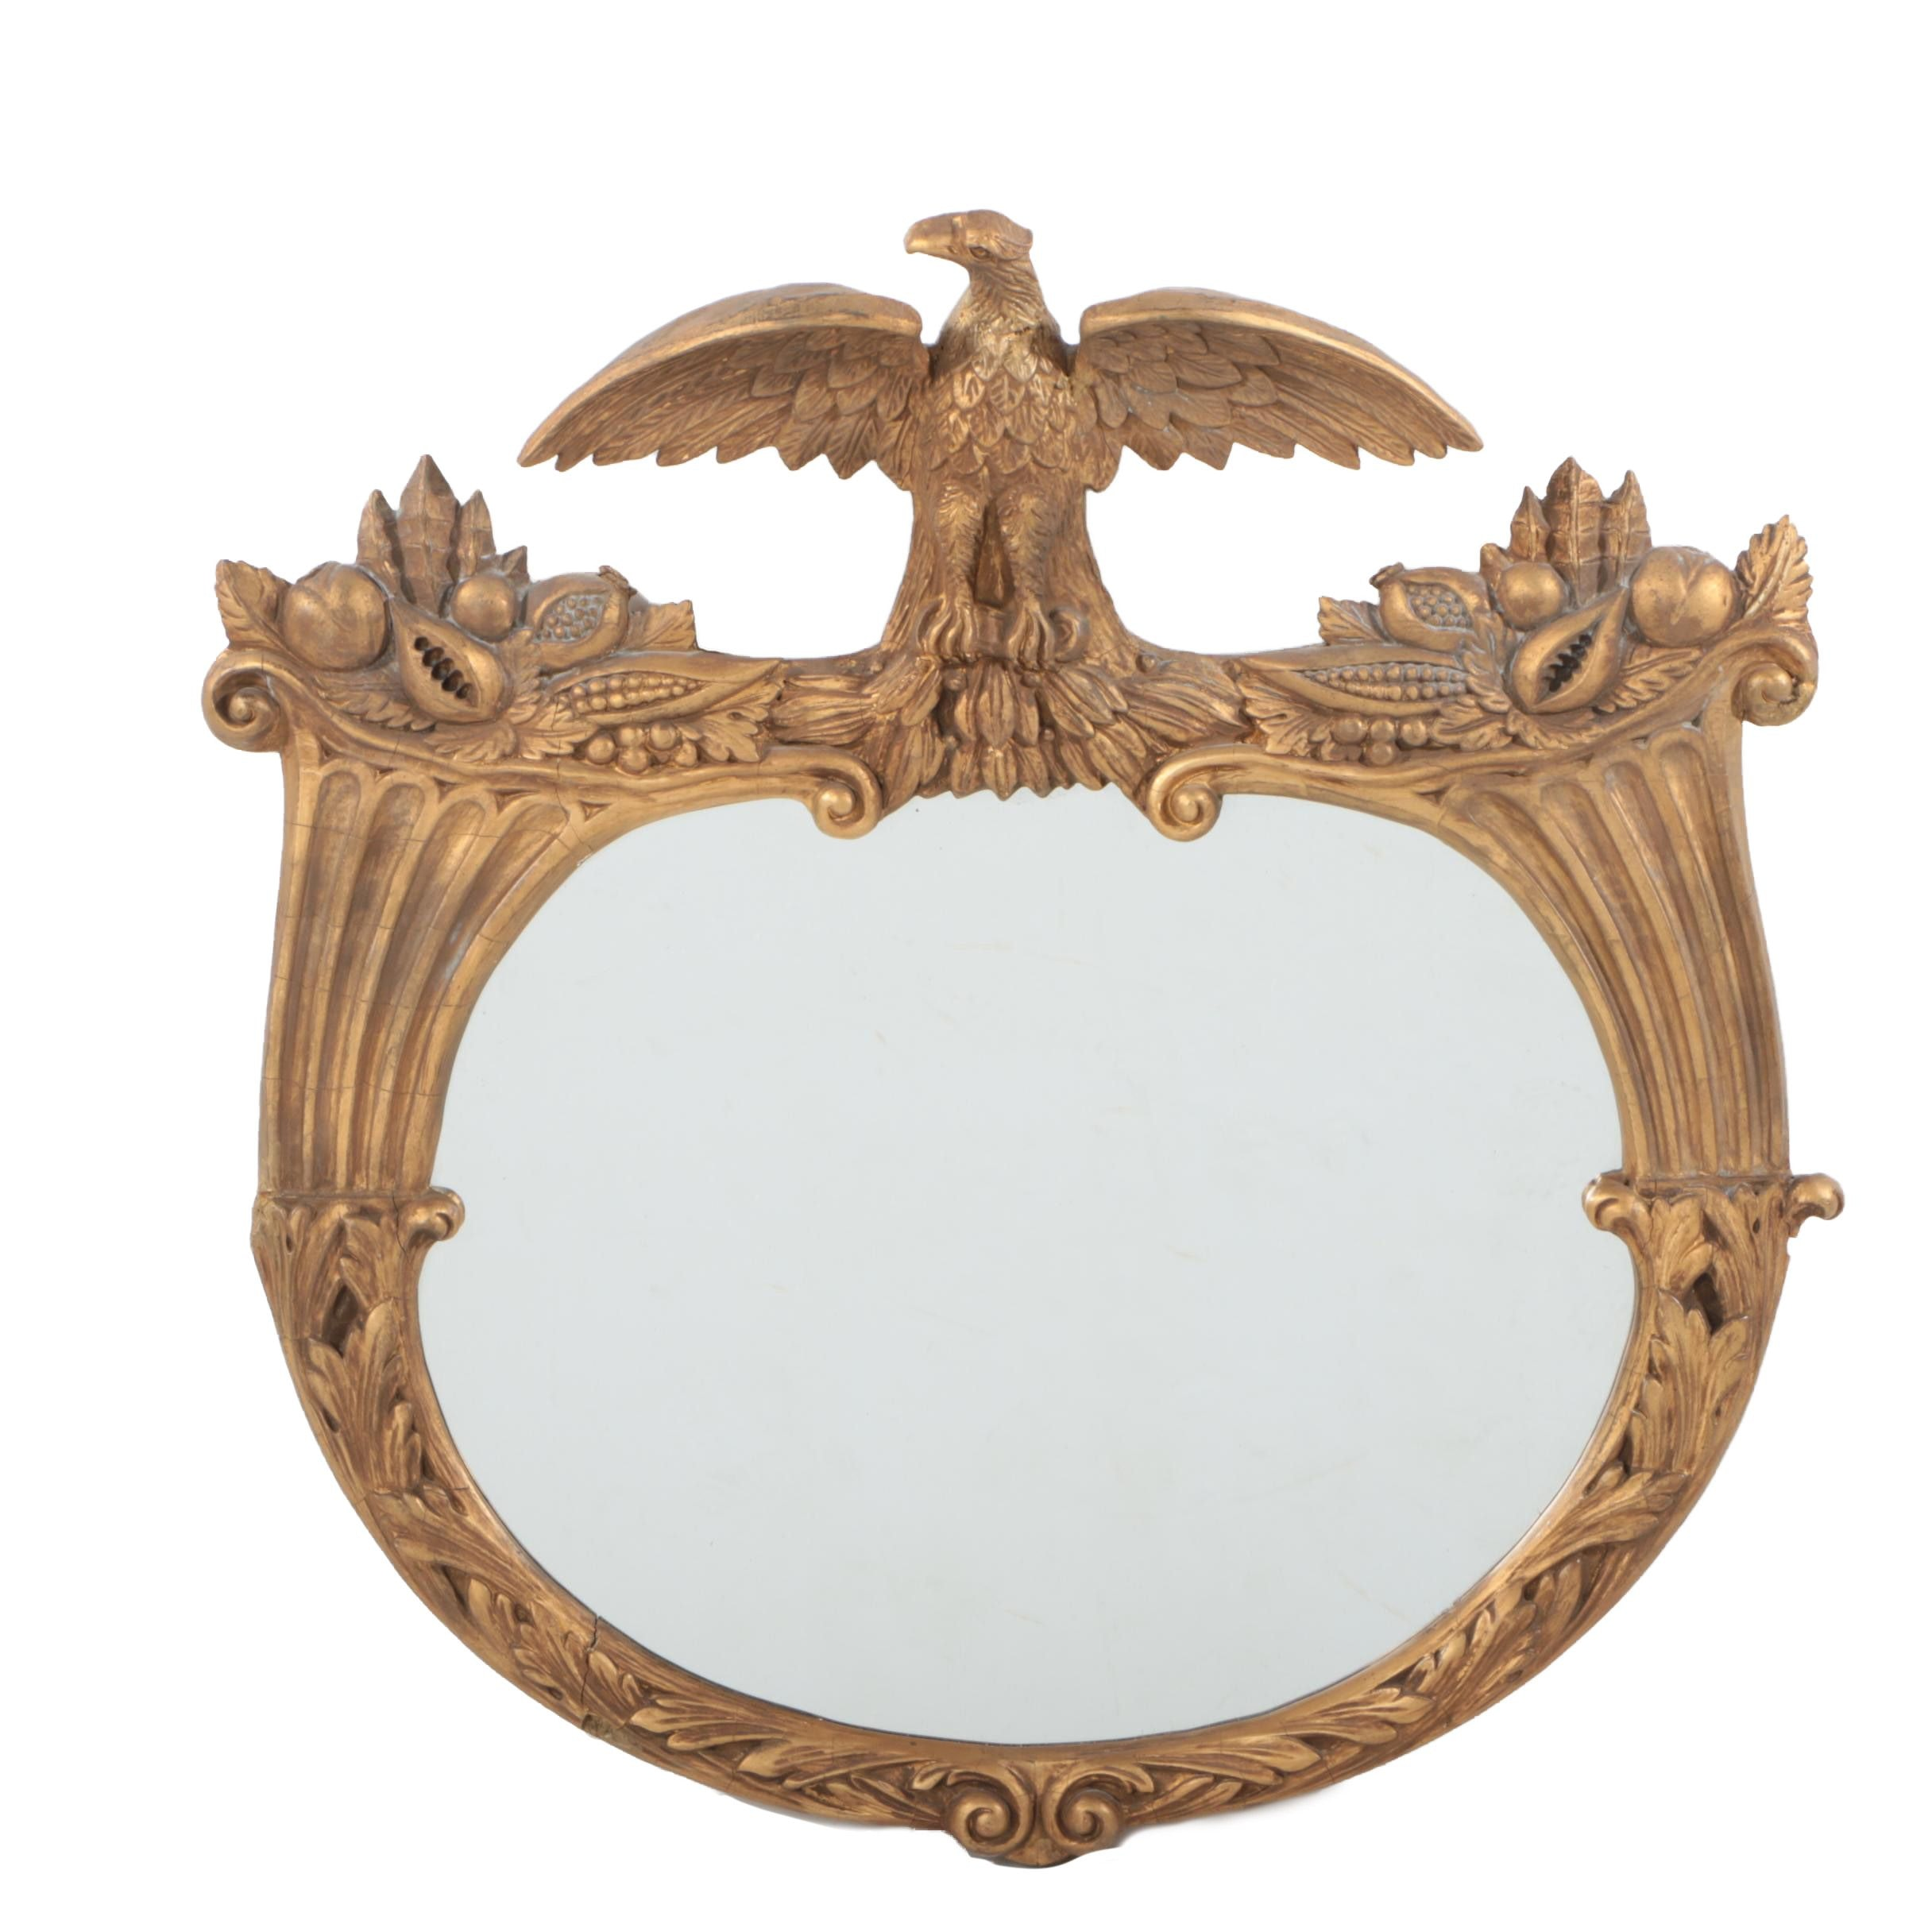 Neoclassical Style Gilded Wall Mirror with Eagle